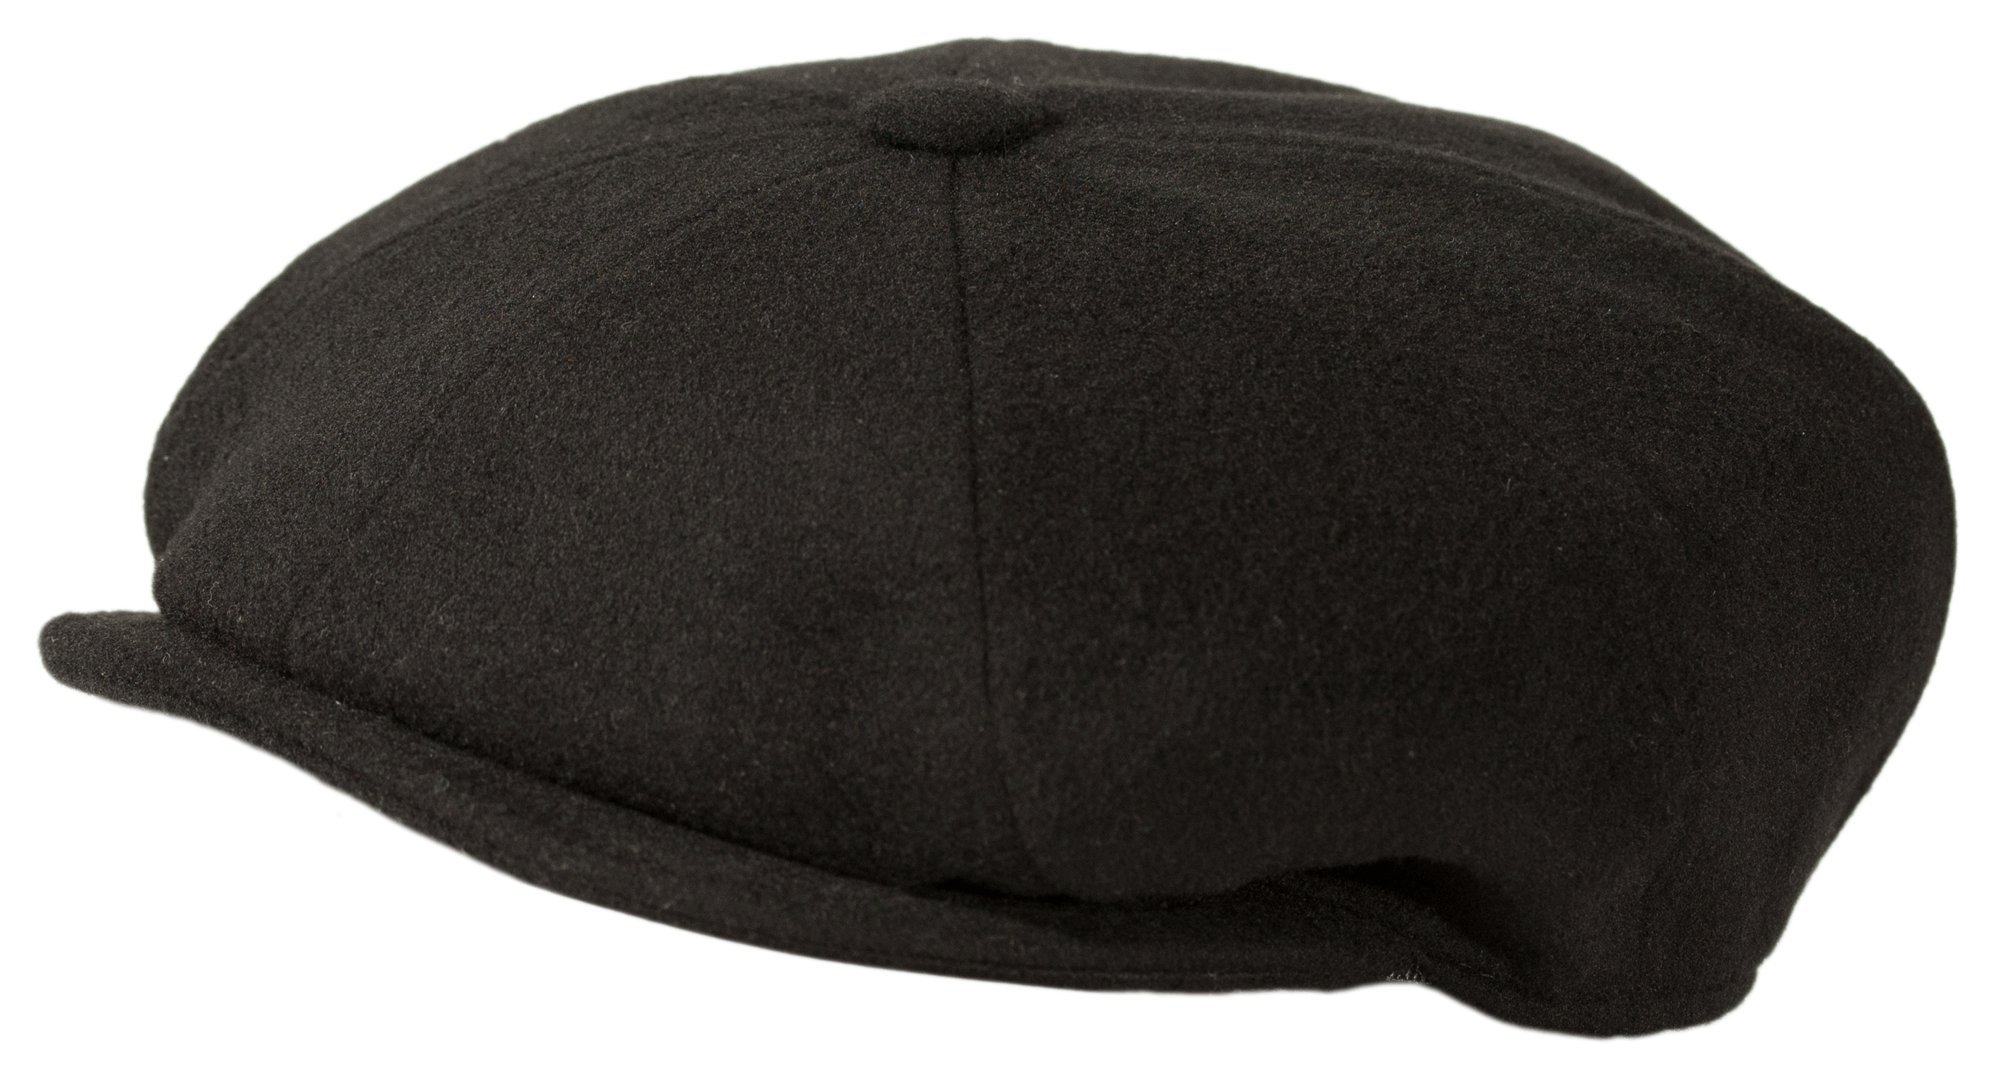 Levine Hat Cashmere 'Classico' 8-Panel newsboy Cap (XXLarge (Fits 7 3/4 To 7 7/8), Black) by Levine Hat (Image #1)